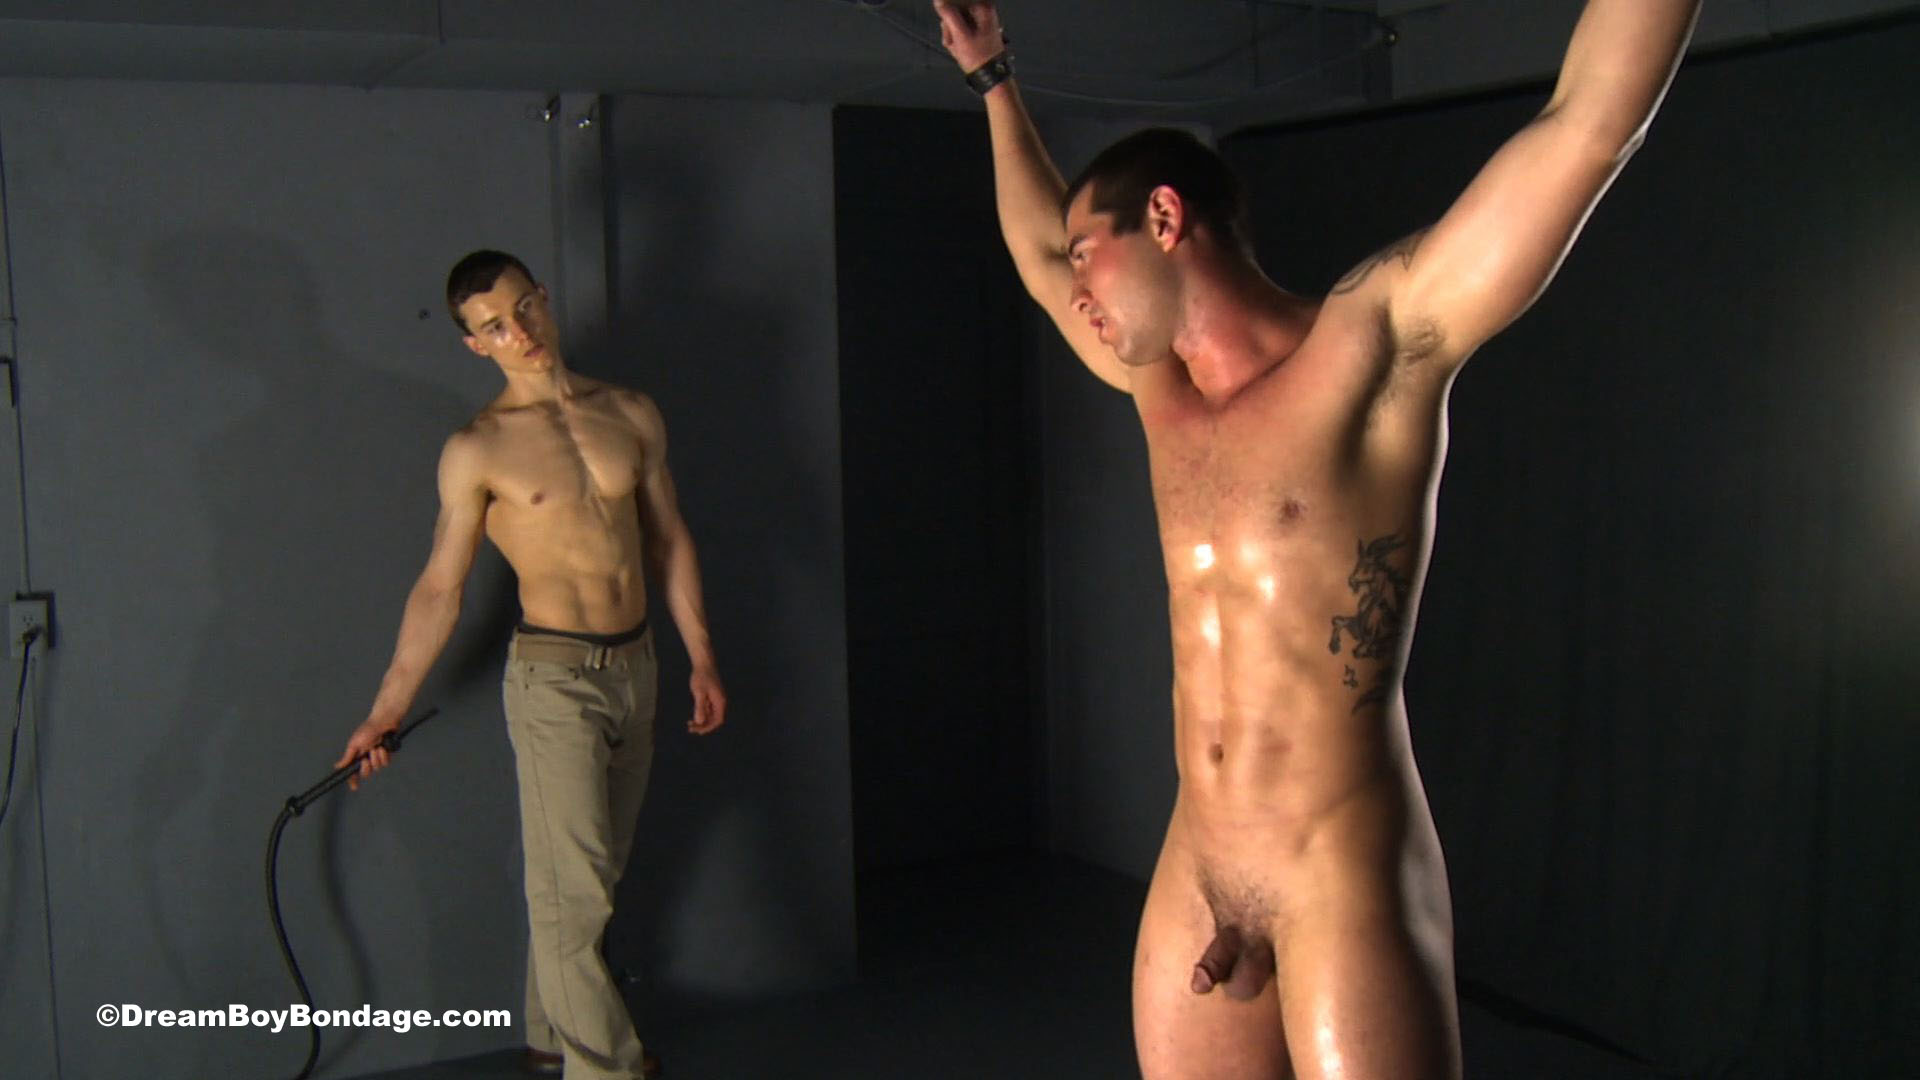 Want male genial bondage videos